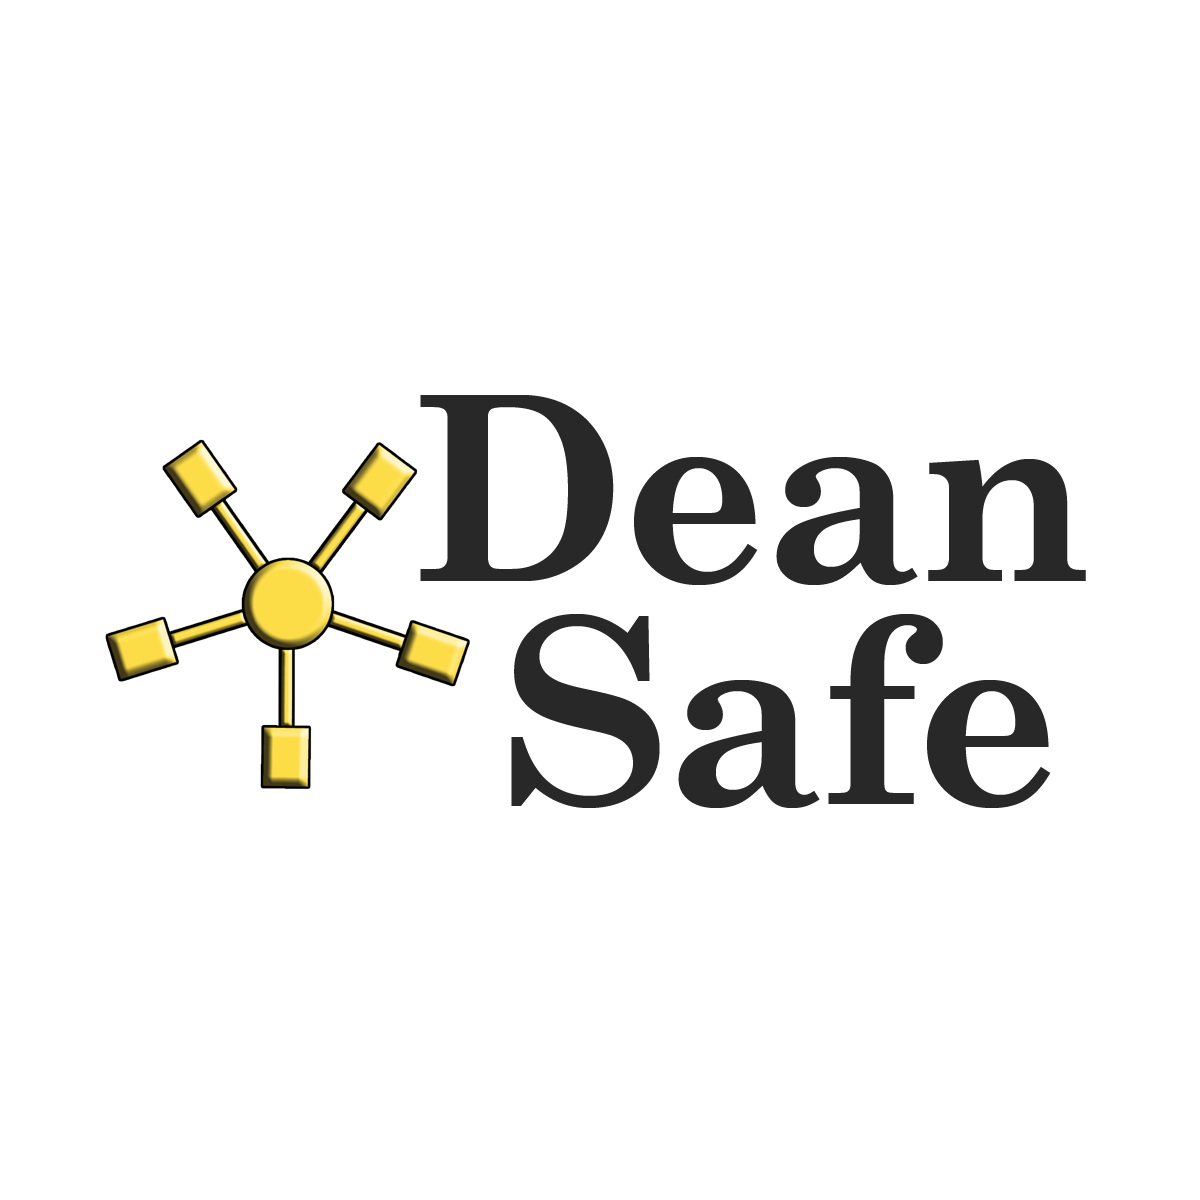 DeanSafe com - Gun Safes, Home Safes & High Security Safes